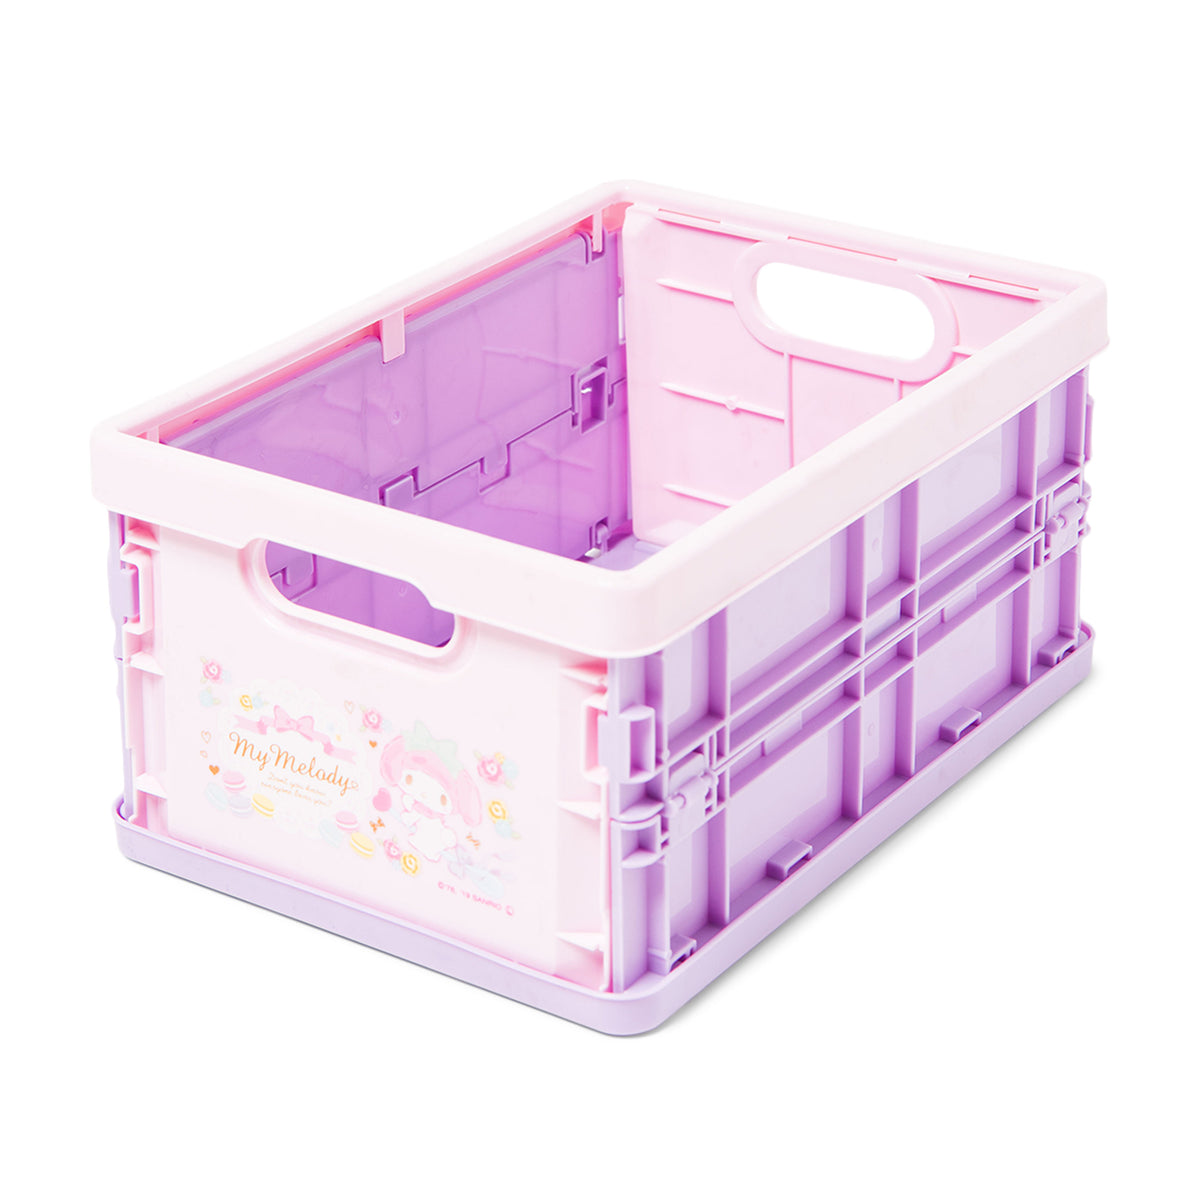 My Melody Collapsible Storage Box Small